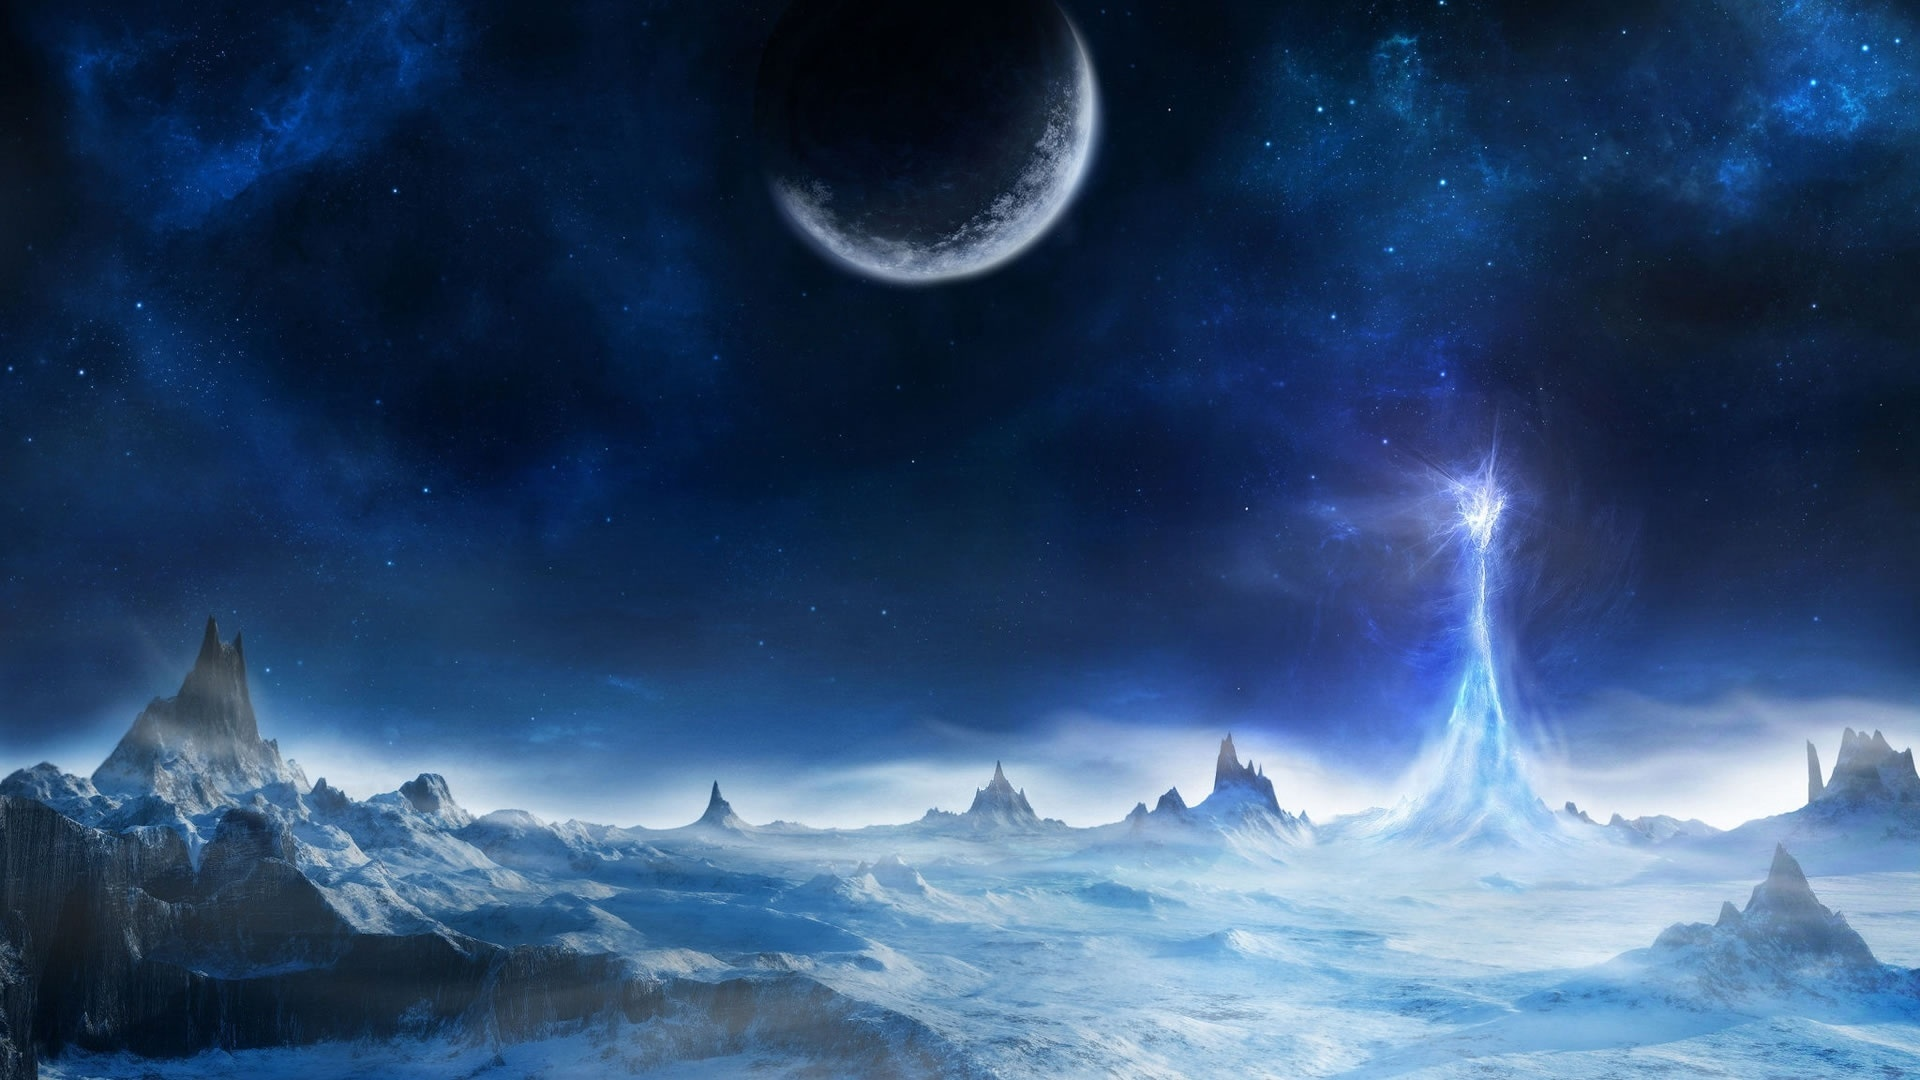 Fantasy Snow Landscape   Wallpaper High Definition High Quality 1920x1080